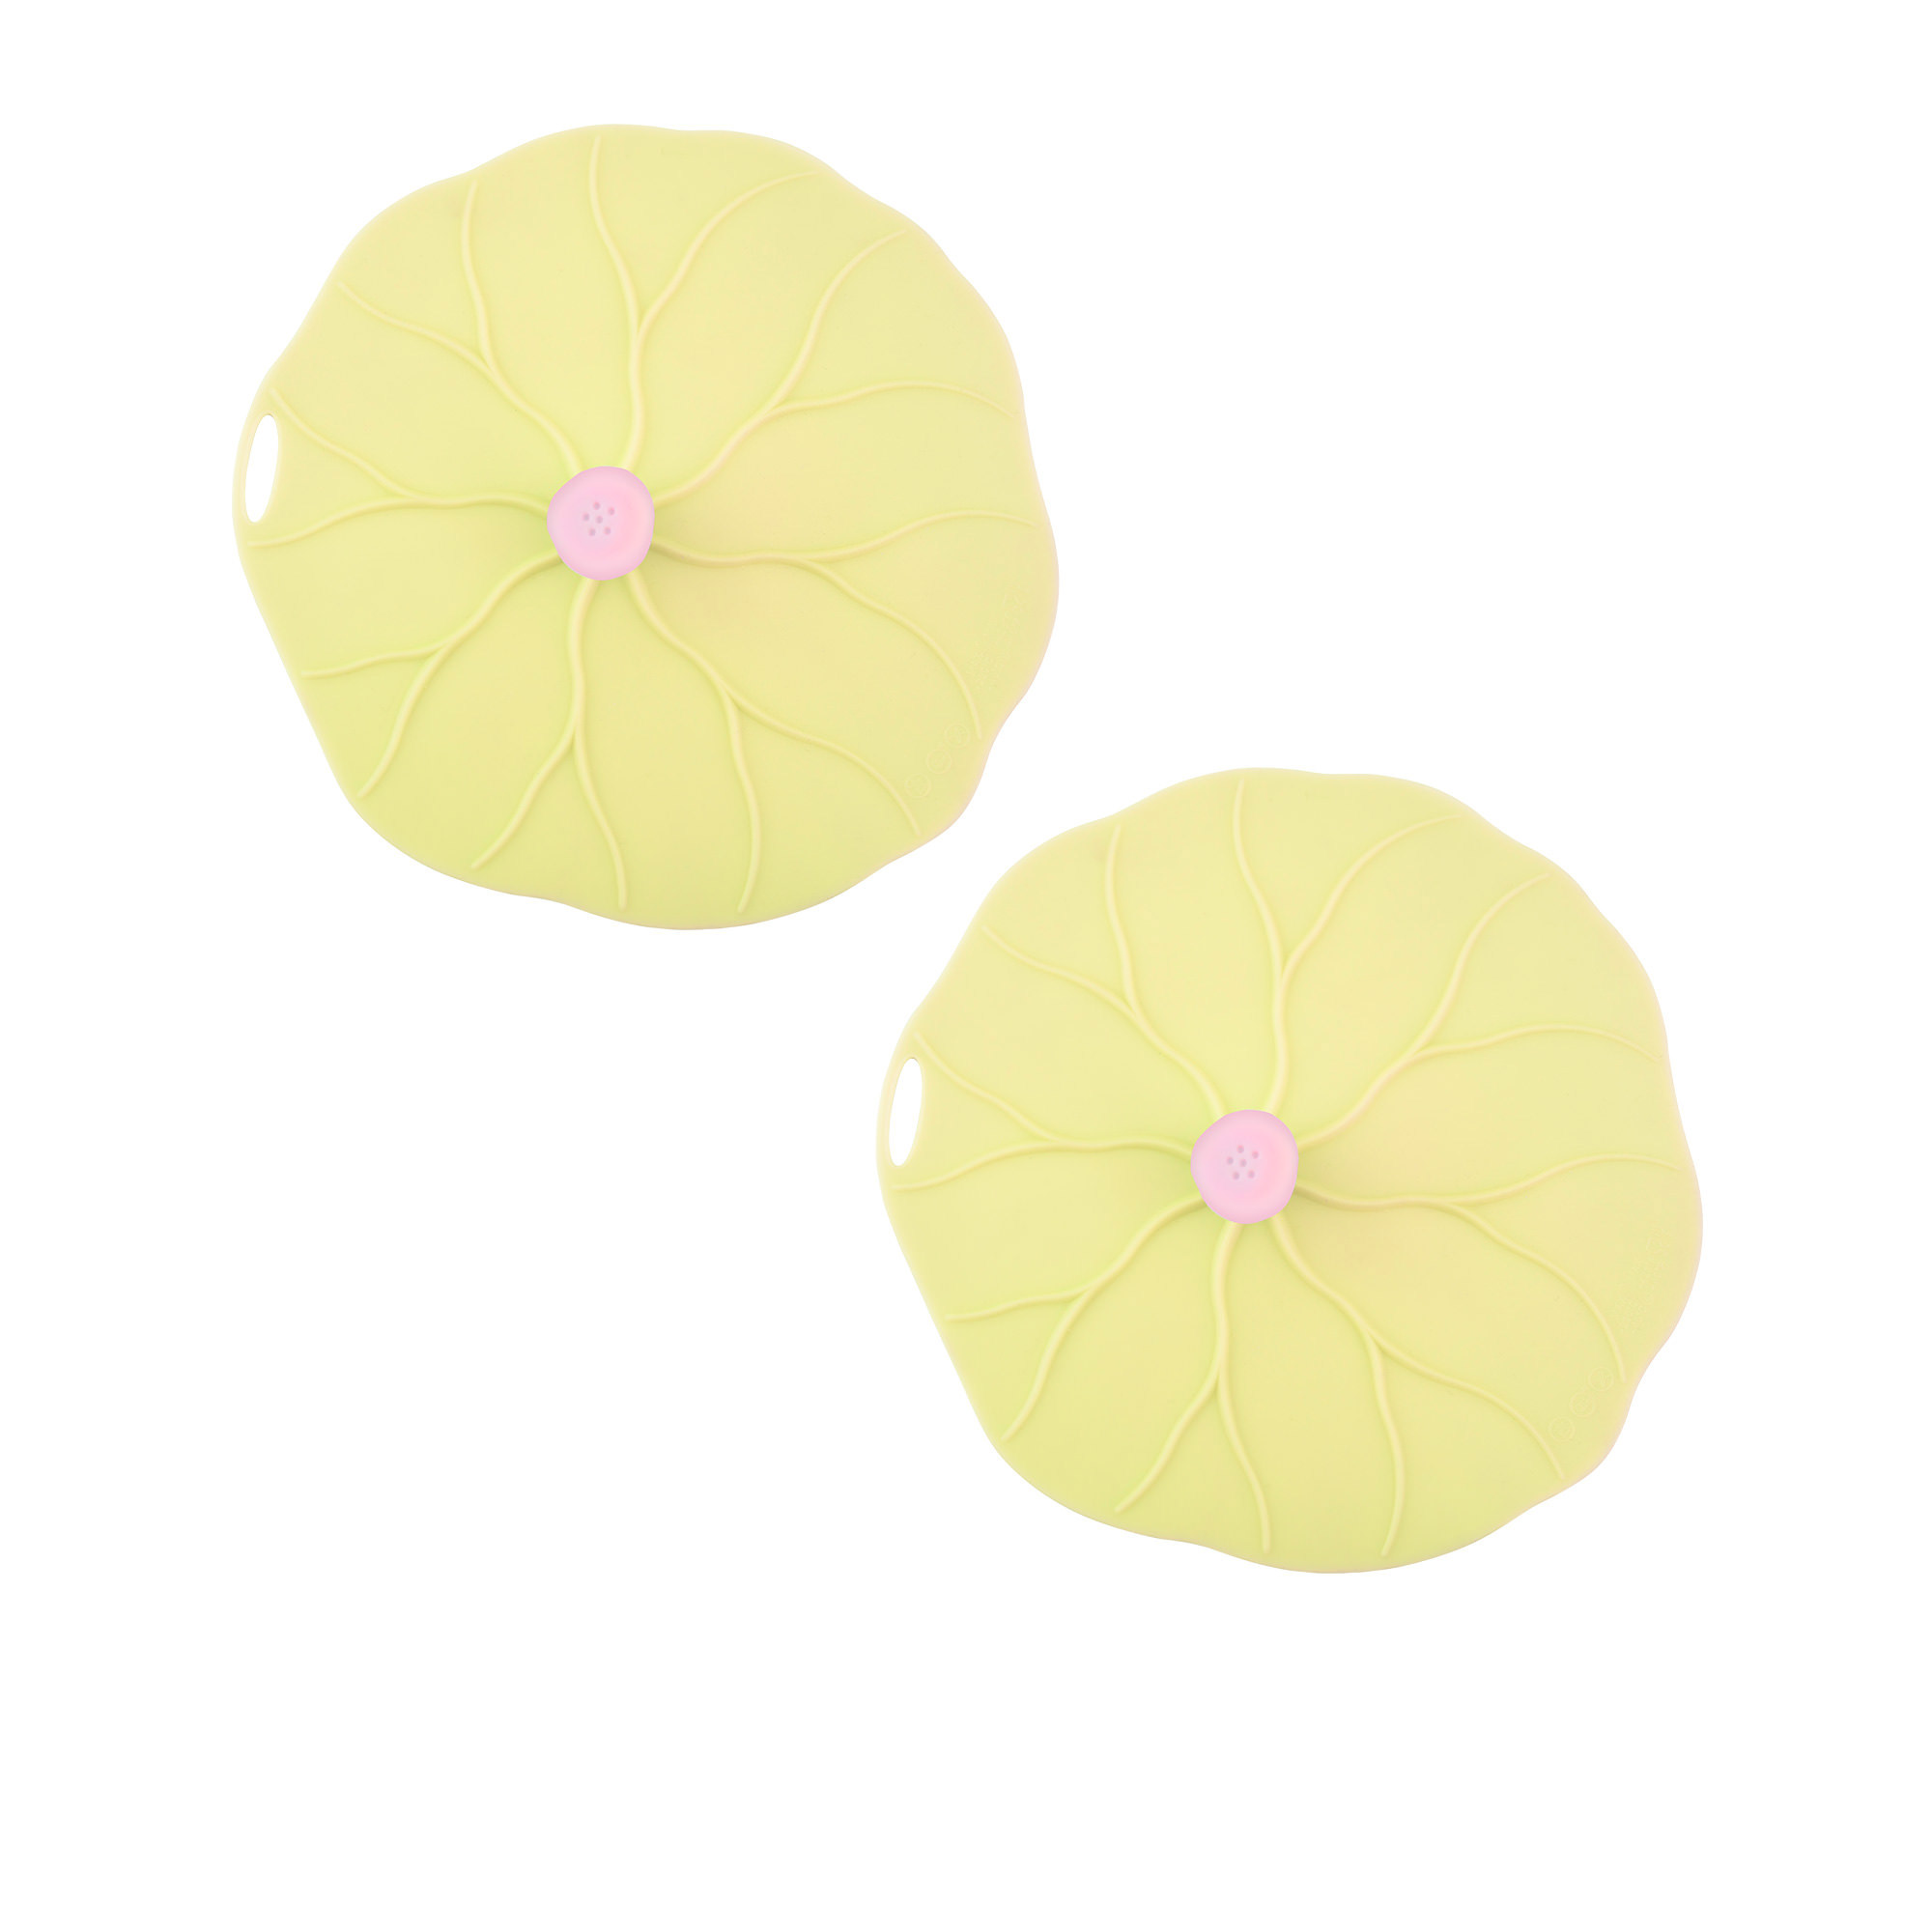 Avanti Silicone Lid Cover Small Set of 2